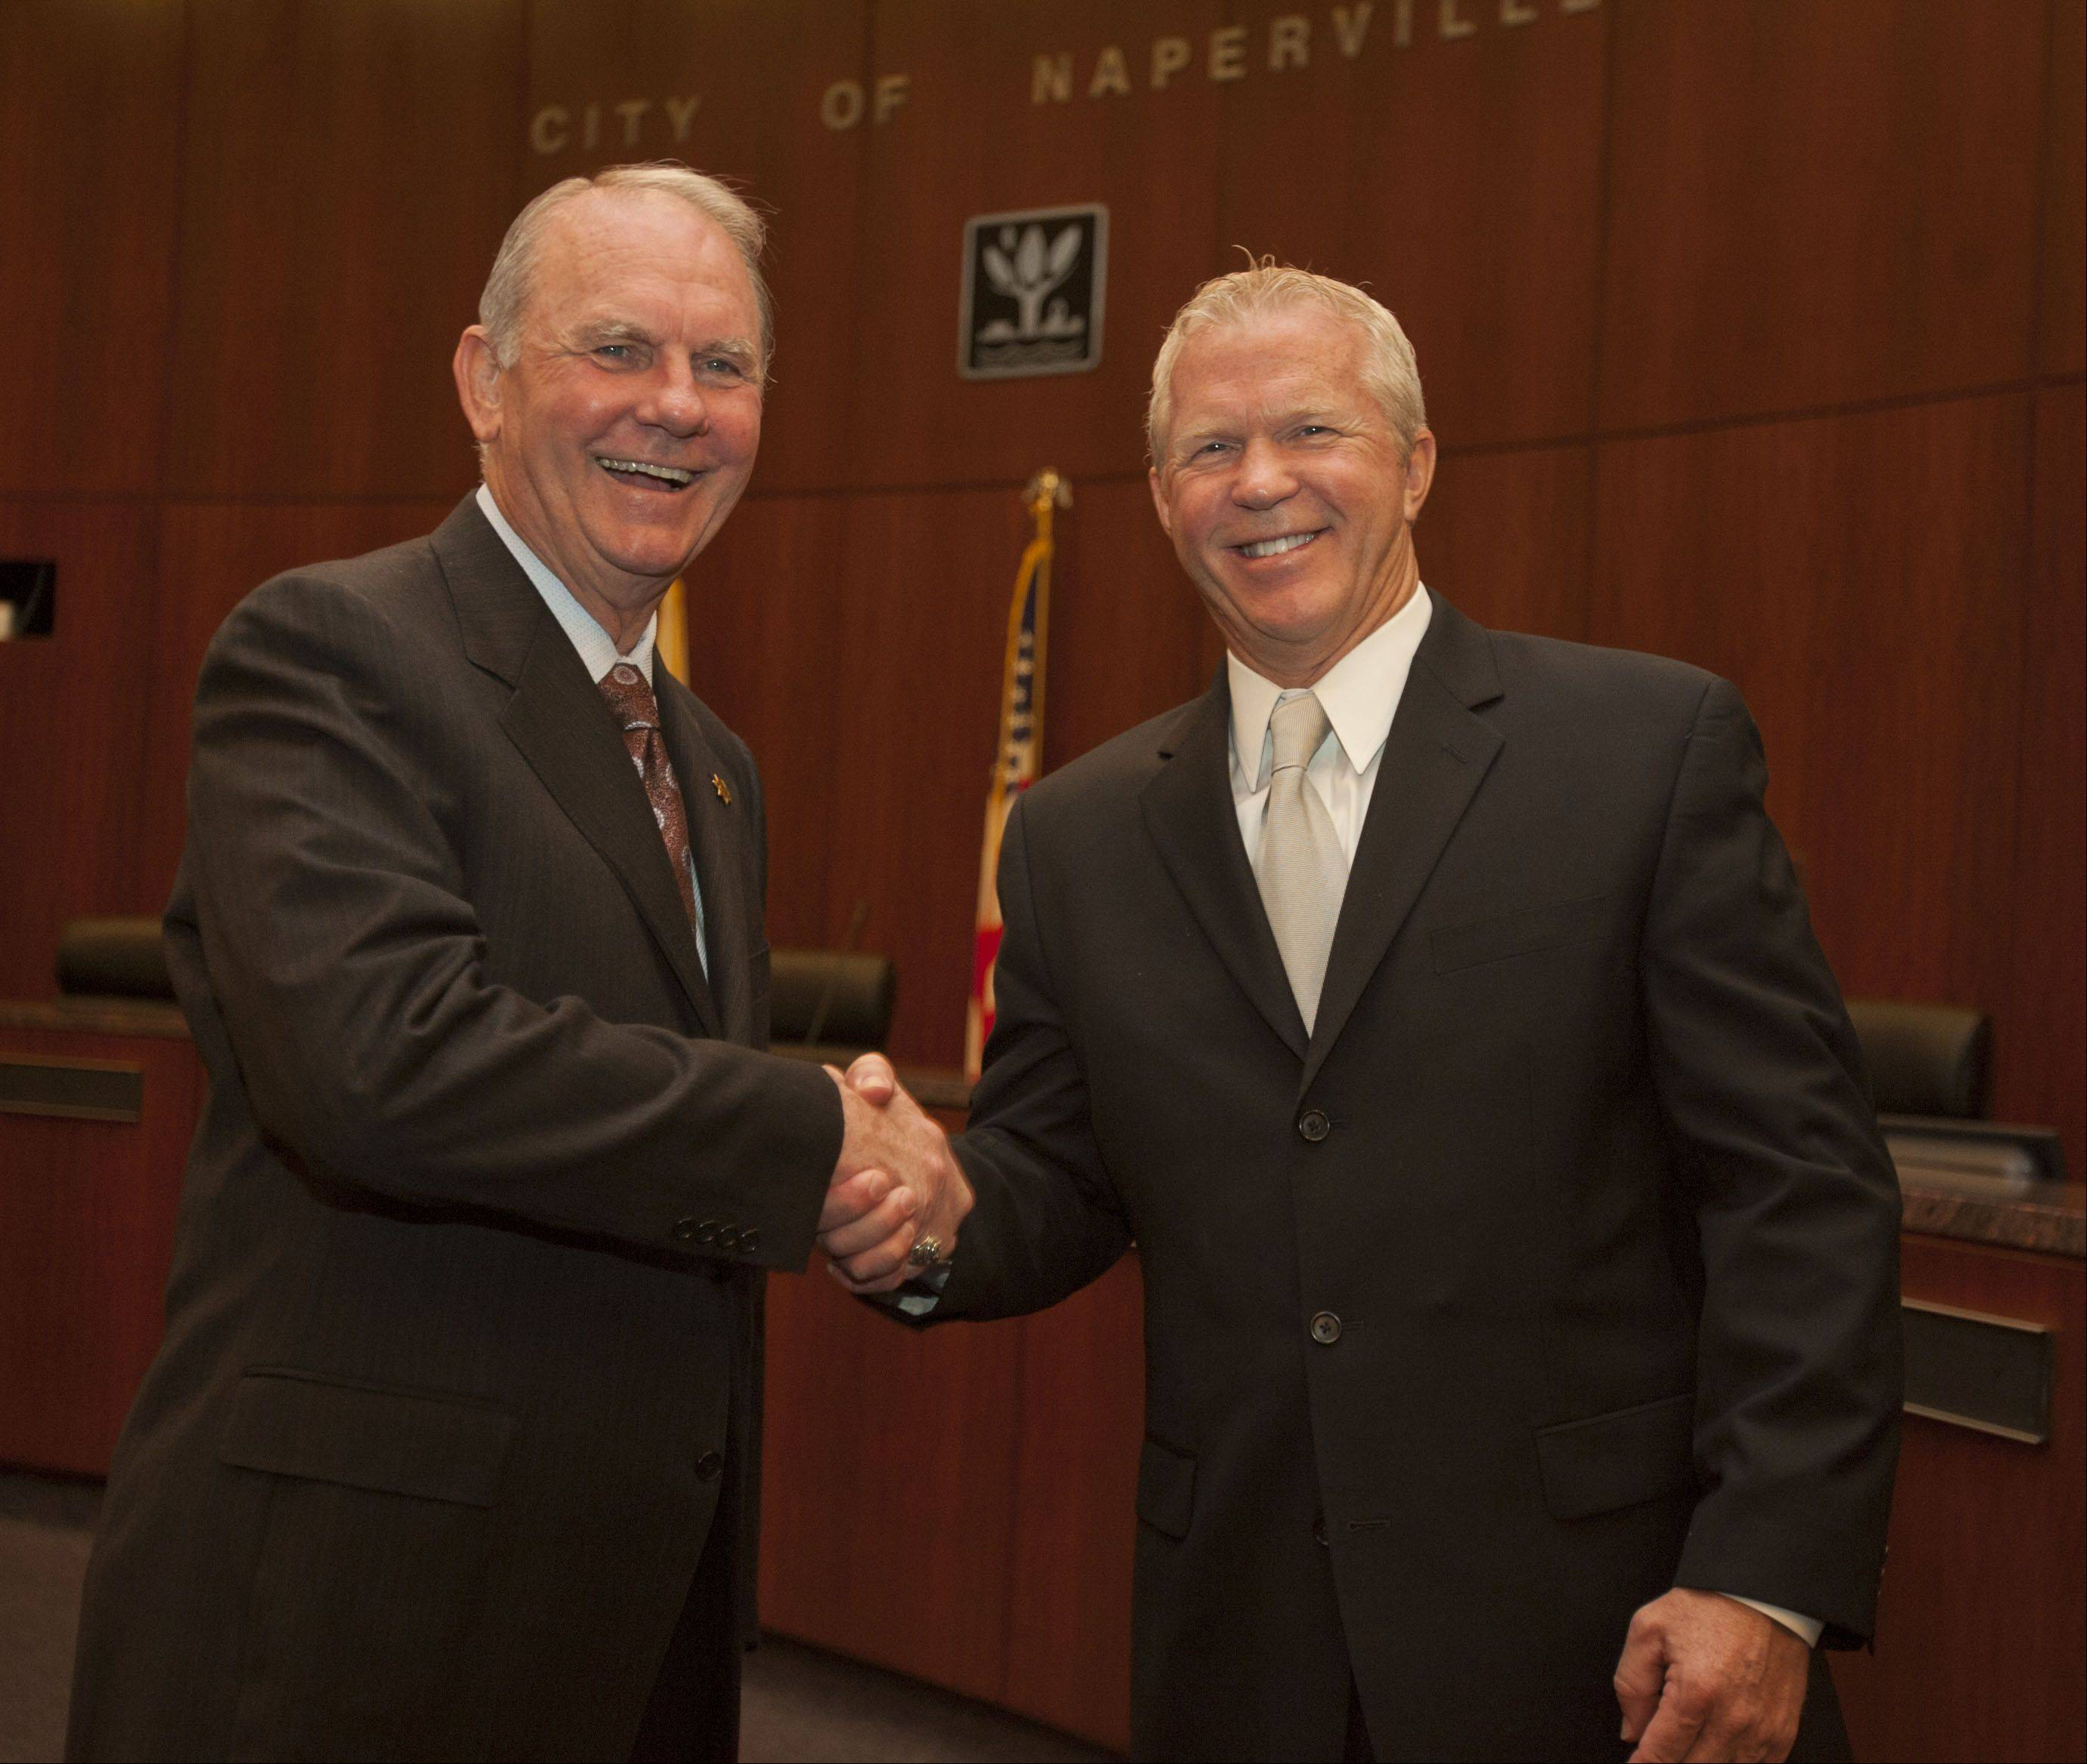 Former Naperville Police Chief David Dial, left, served as a consultant for three months to help new Chief Bob Marshall transition into the role.